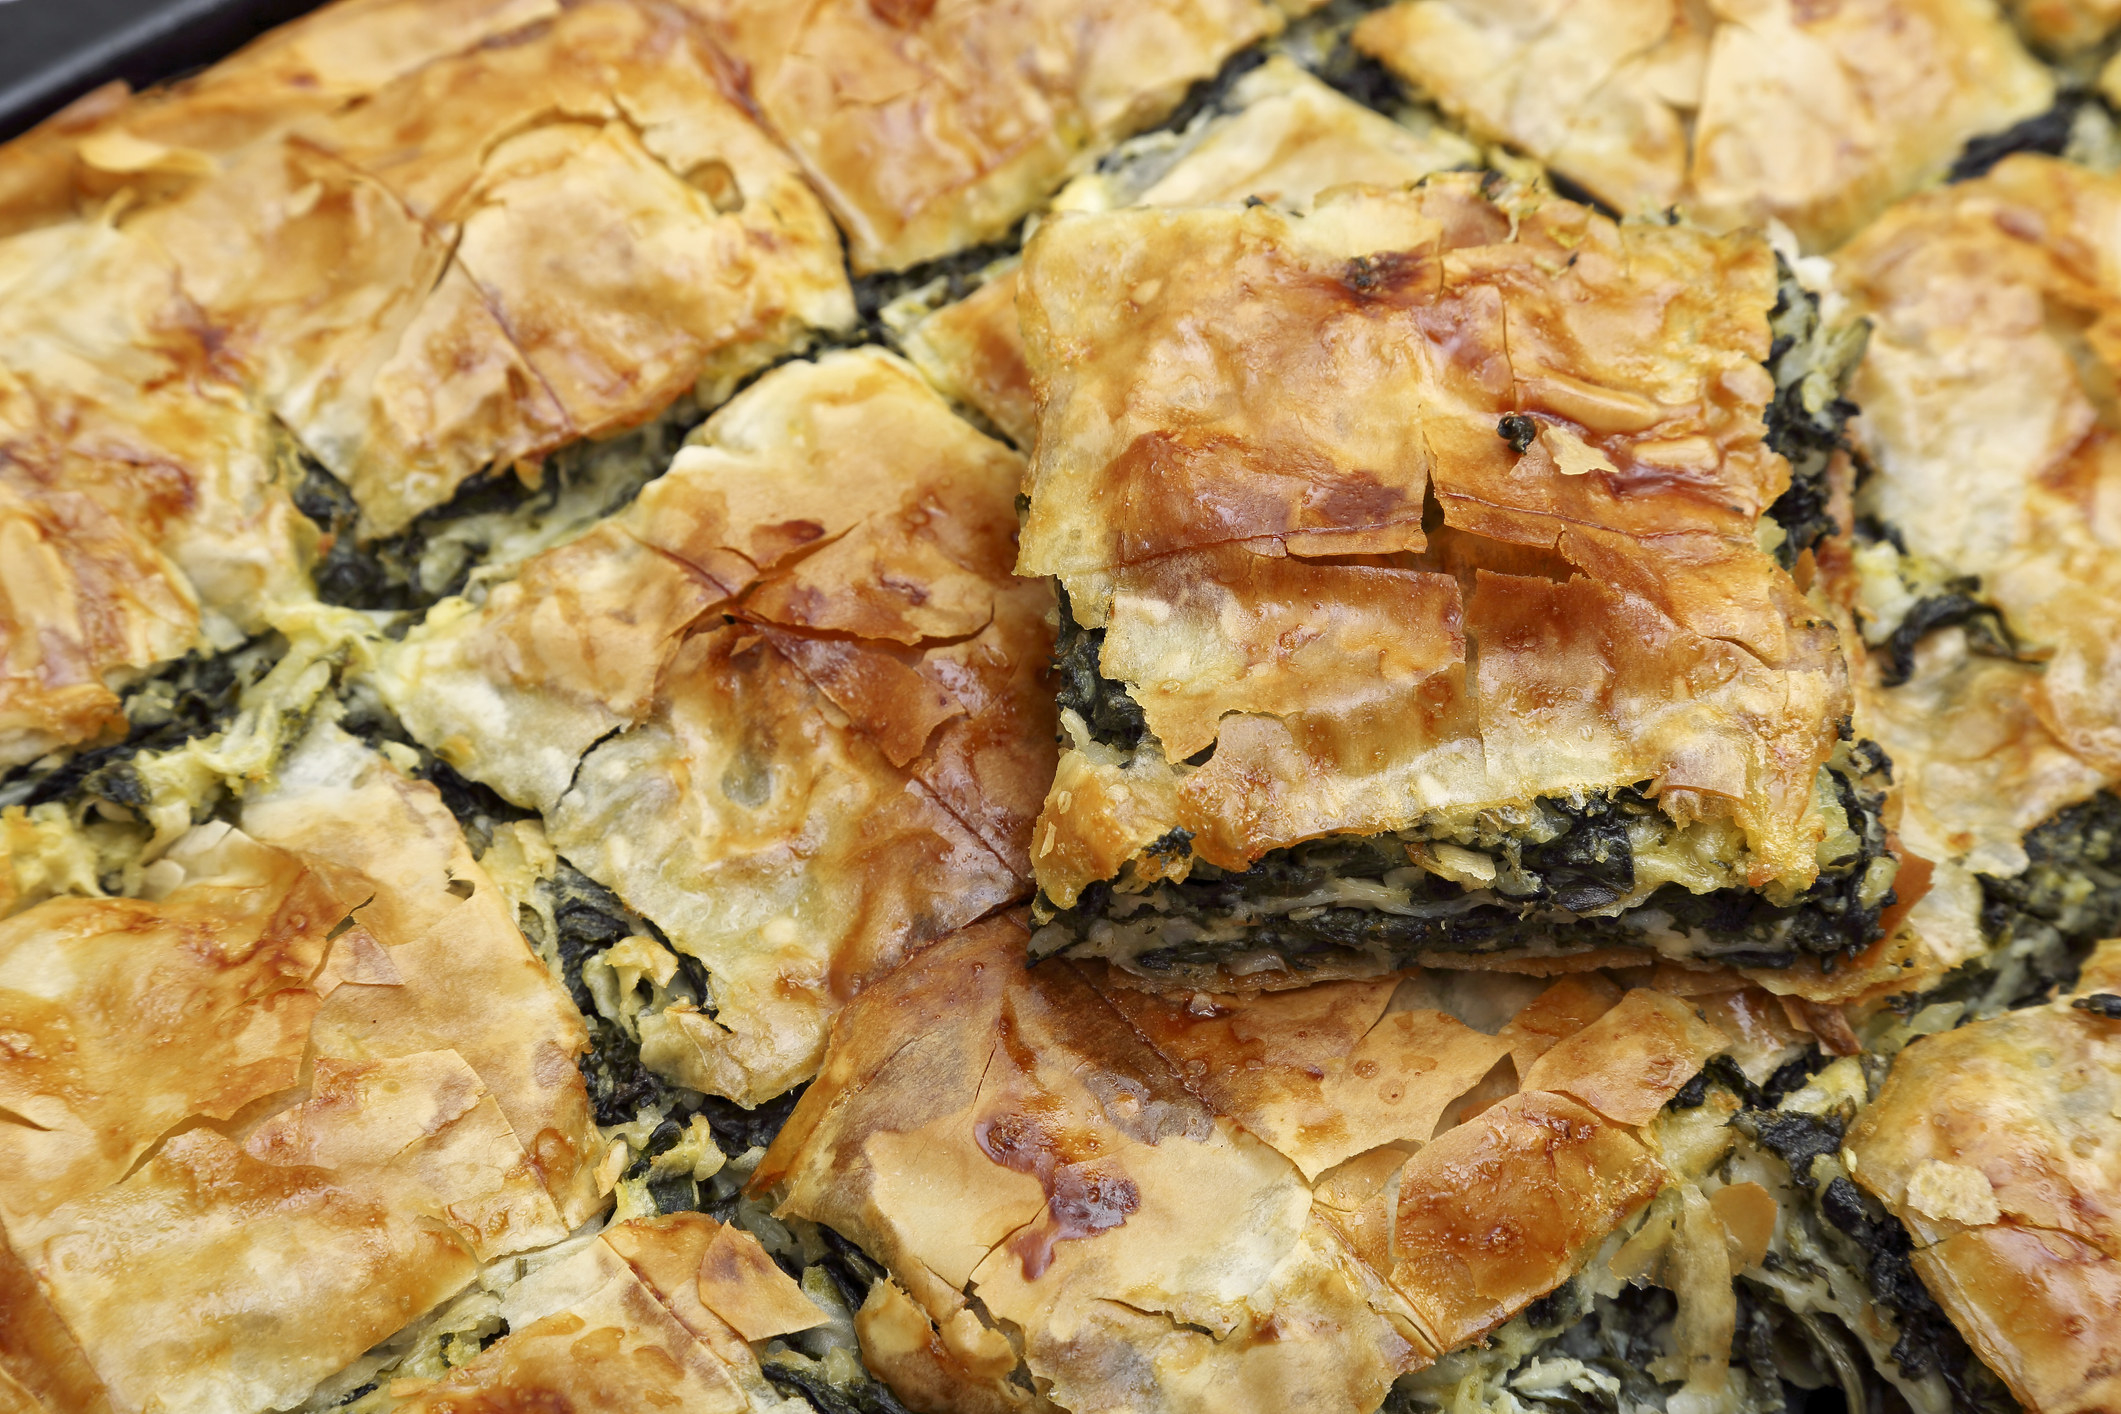 flaky, golden brown pastry filled spinach and cheese